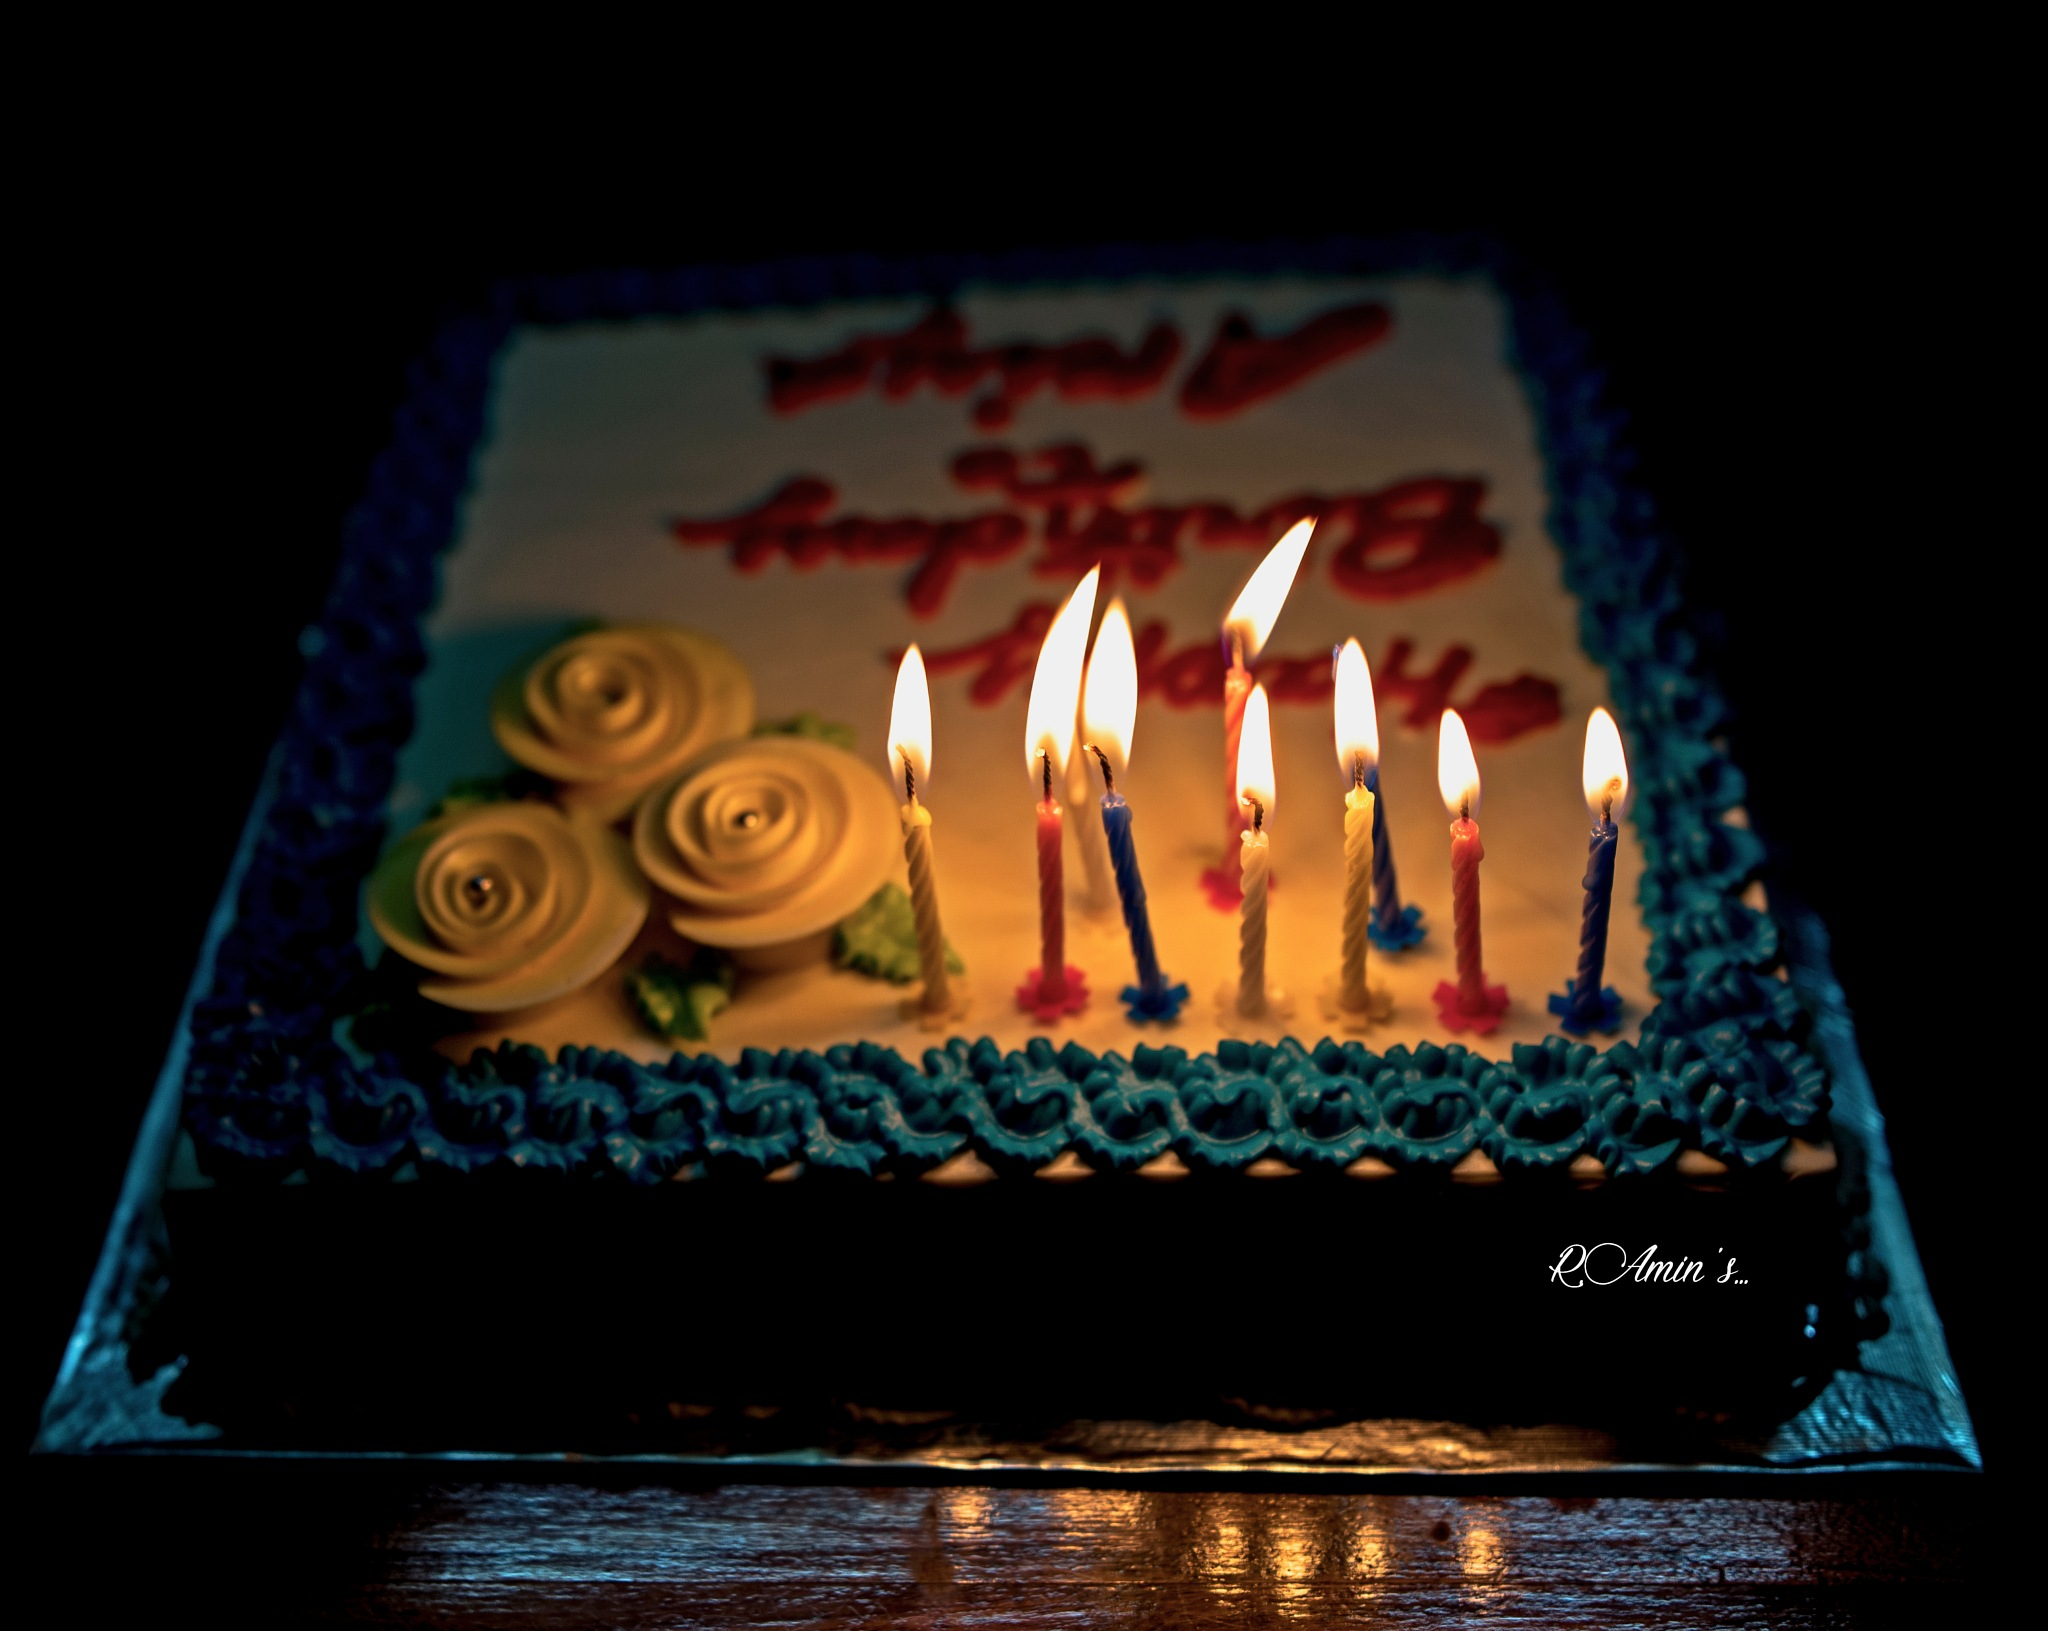 Birthday Cake with Candle Light... by Md. Ruhul Amin